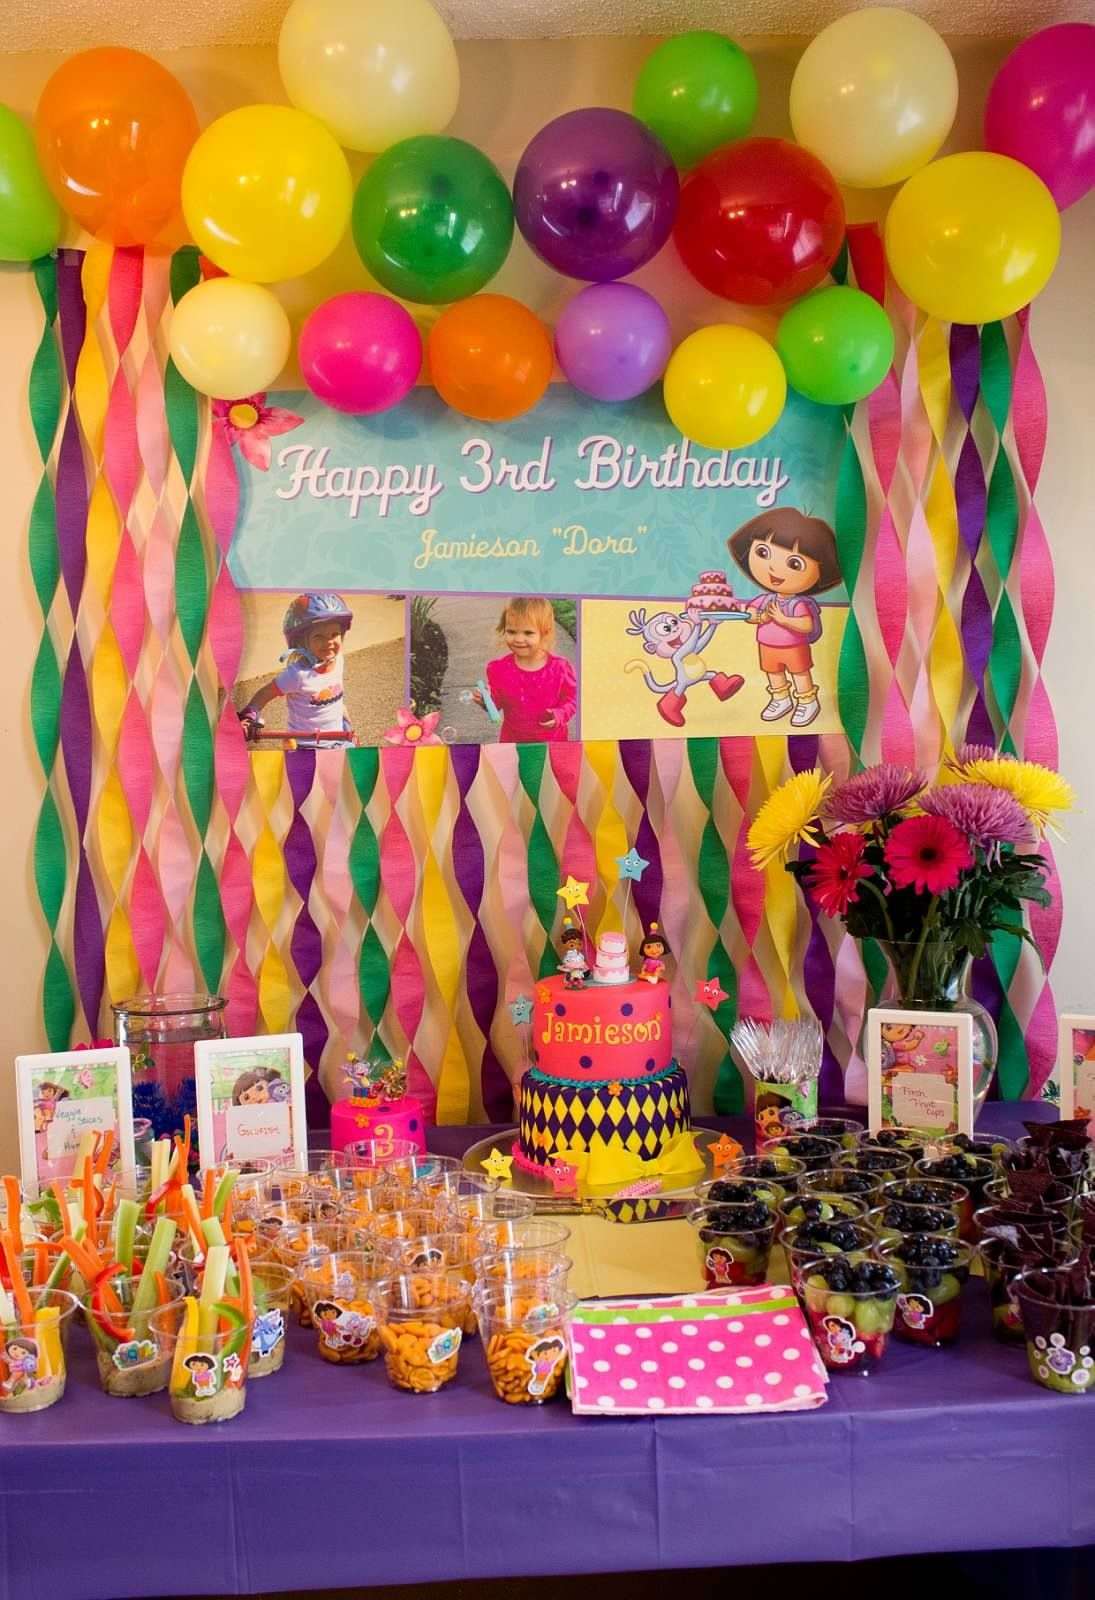 Pin By Nickelodeon On Party Ideas Explorer Birthday Party Dora Party Ideas Birthday Party Themes